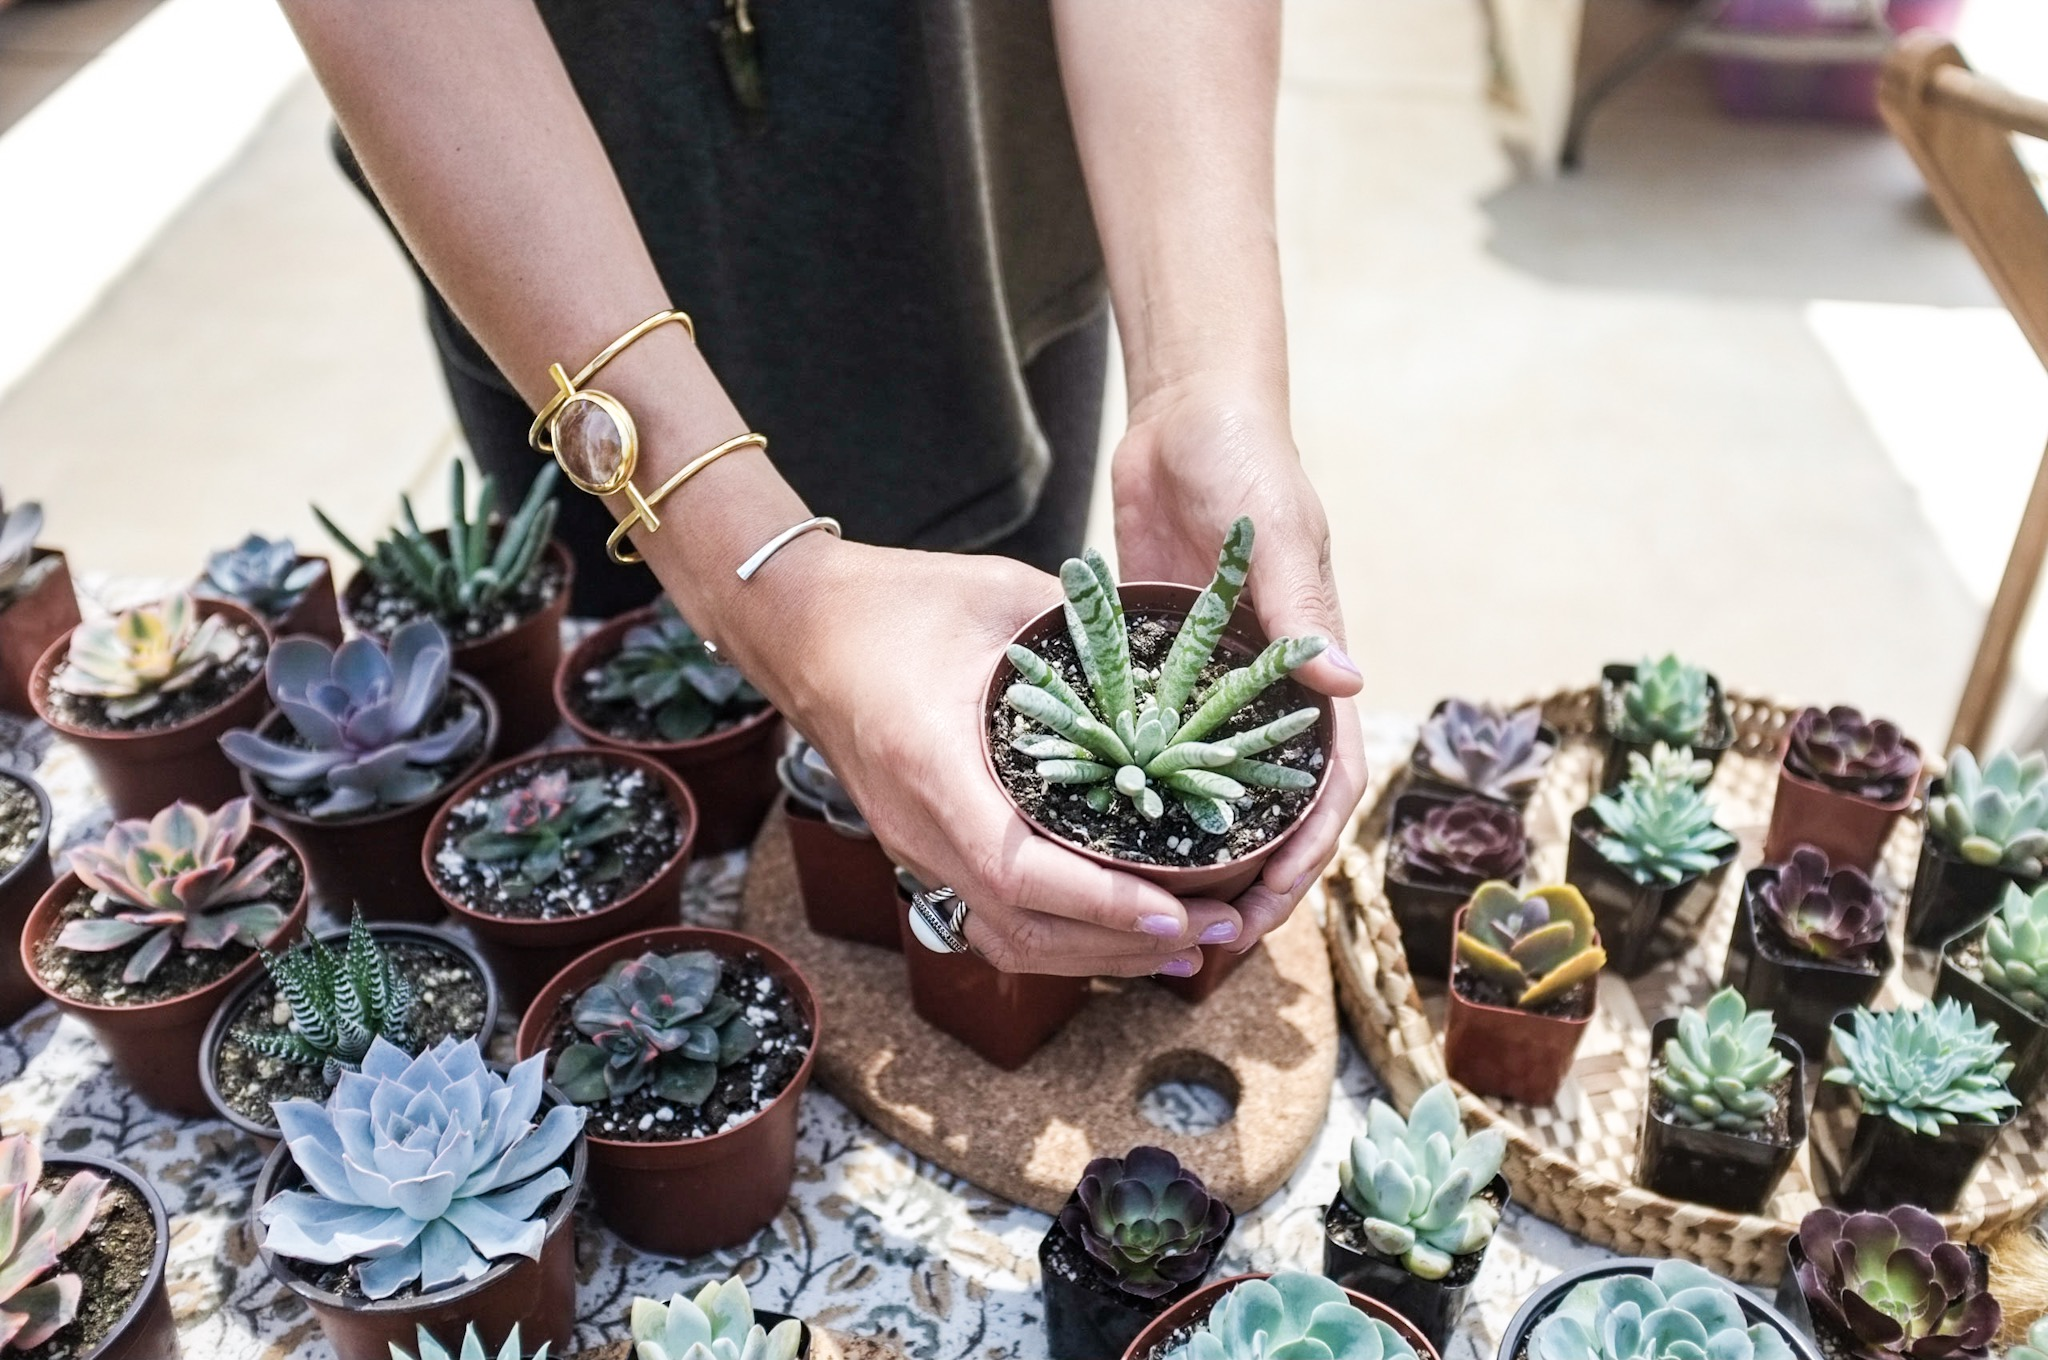 Beautiful & DiverseSucculent Plants - Our selection of species will delight with colors, textures, and shapes.